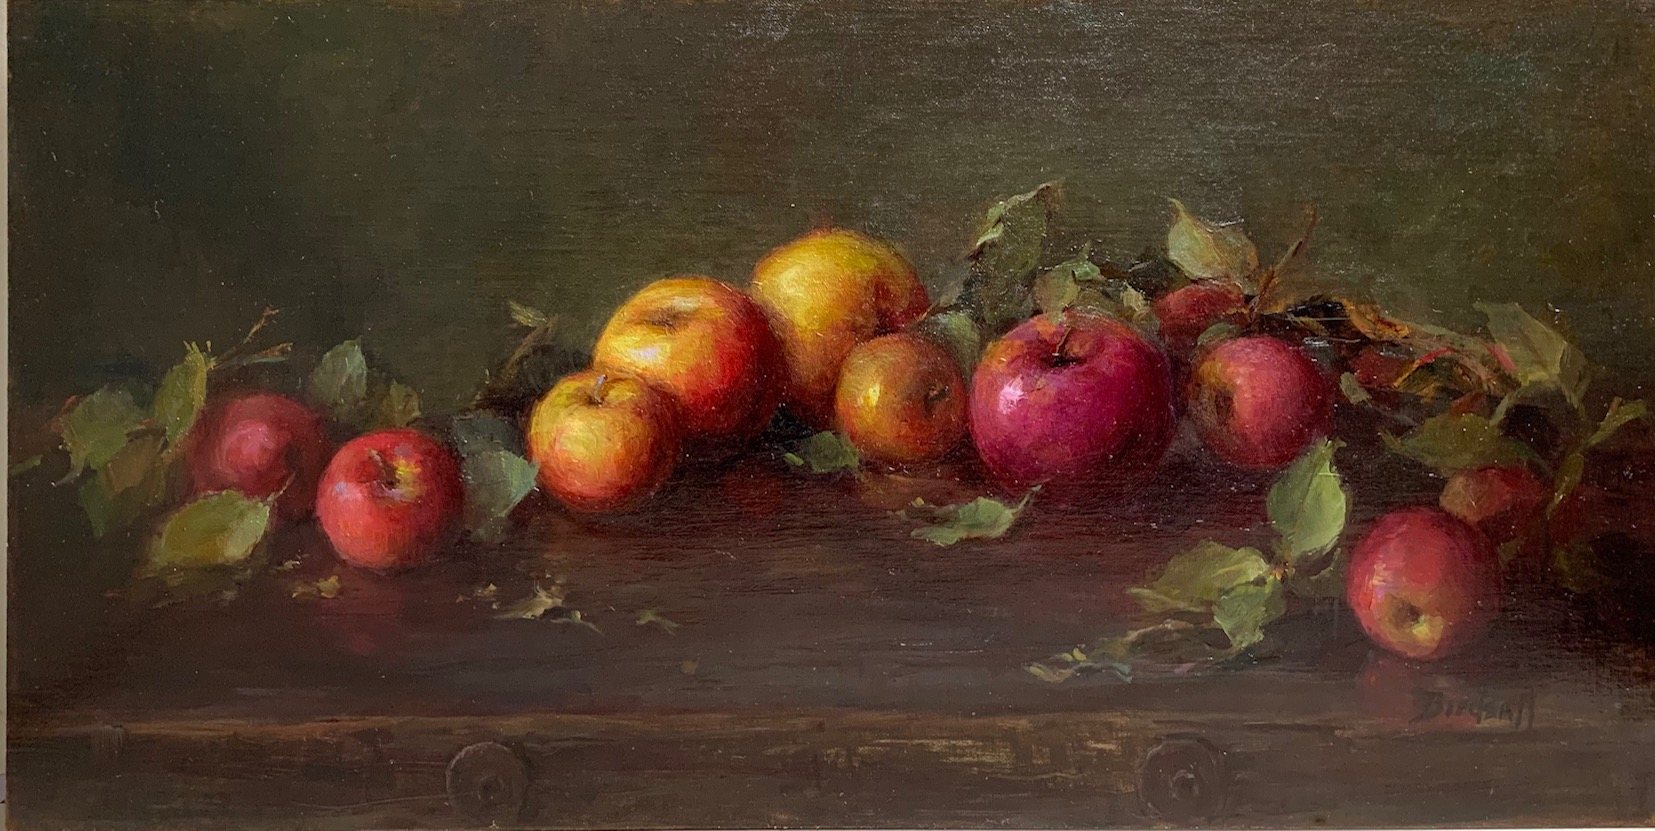 Birdsall, Stephanie, Apples Forever,